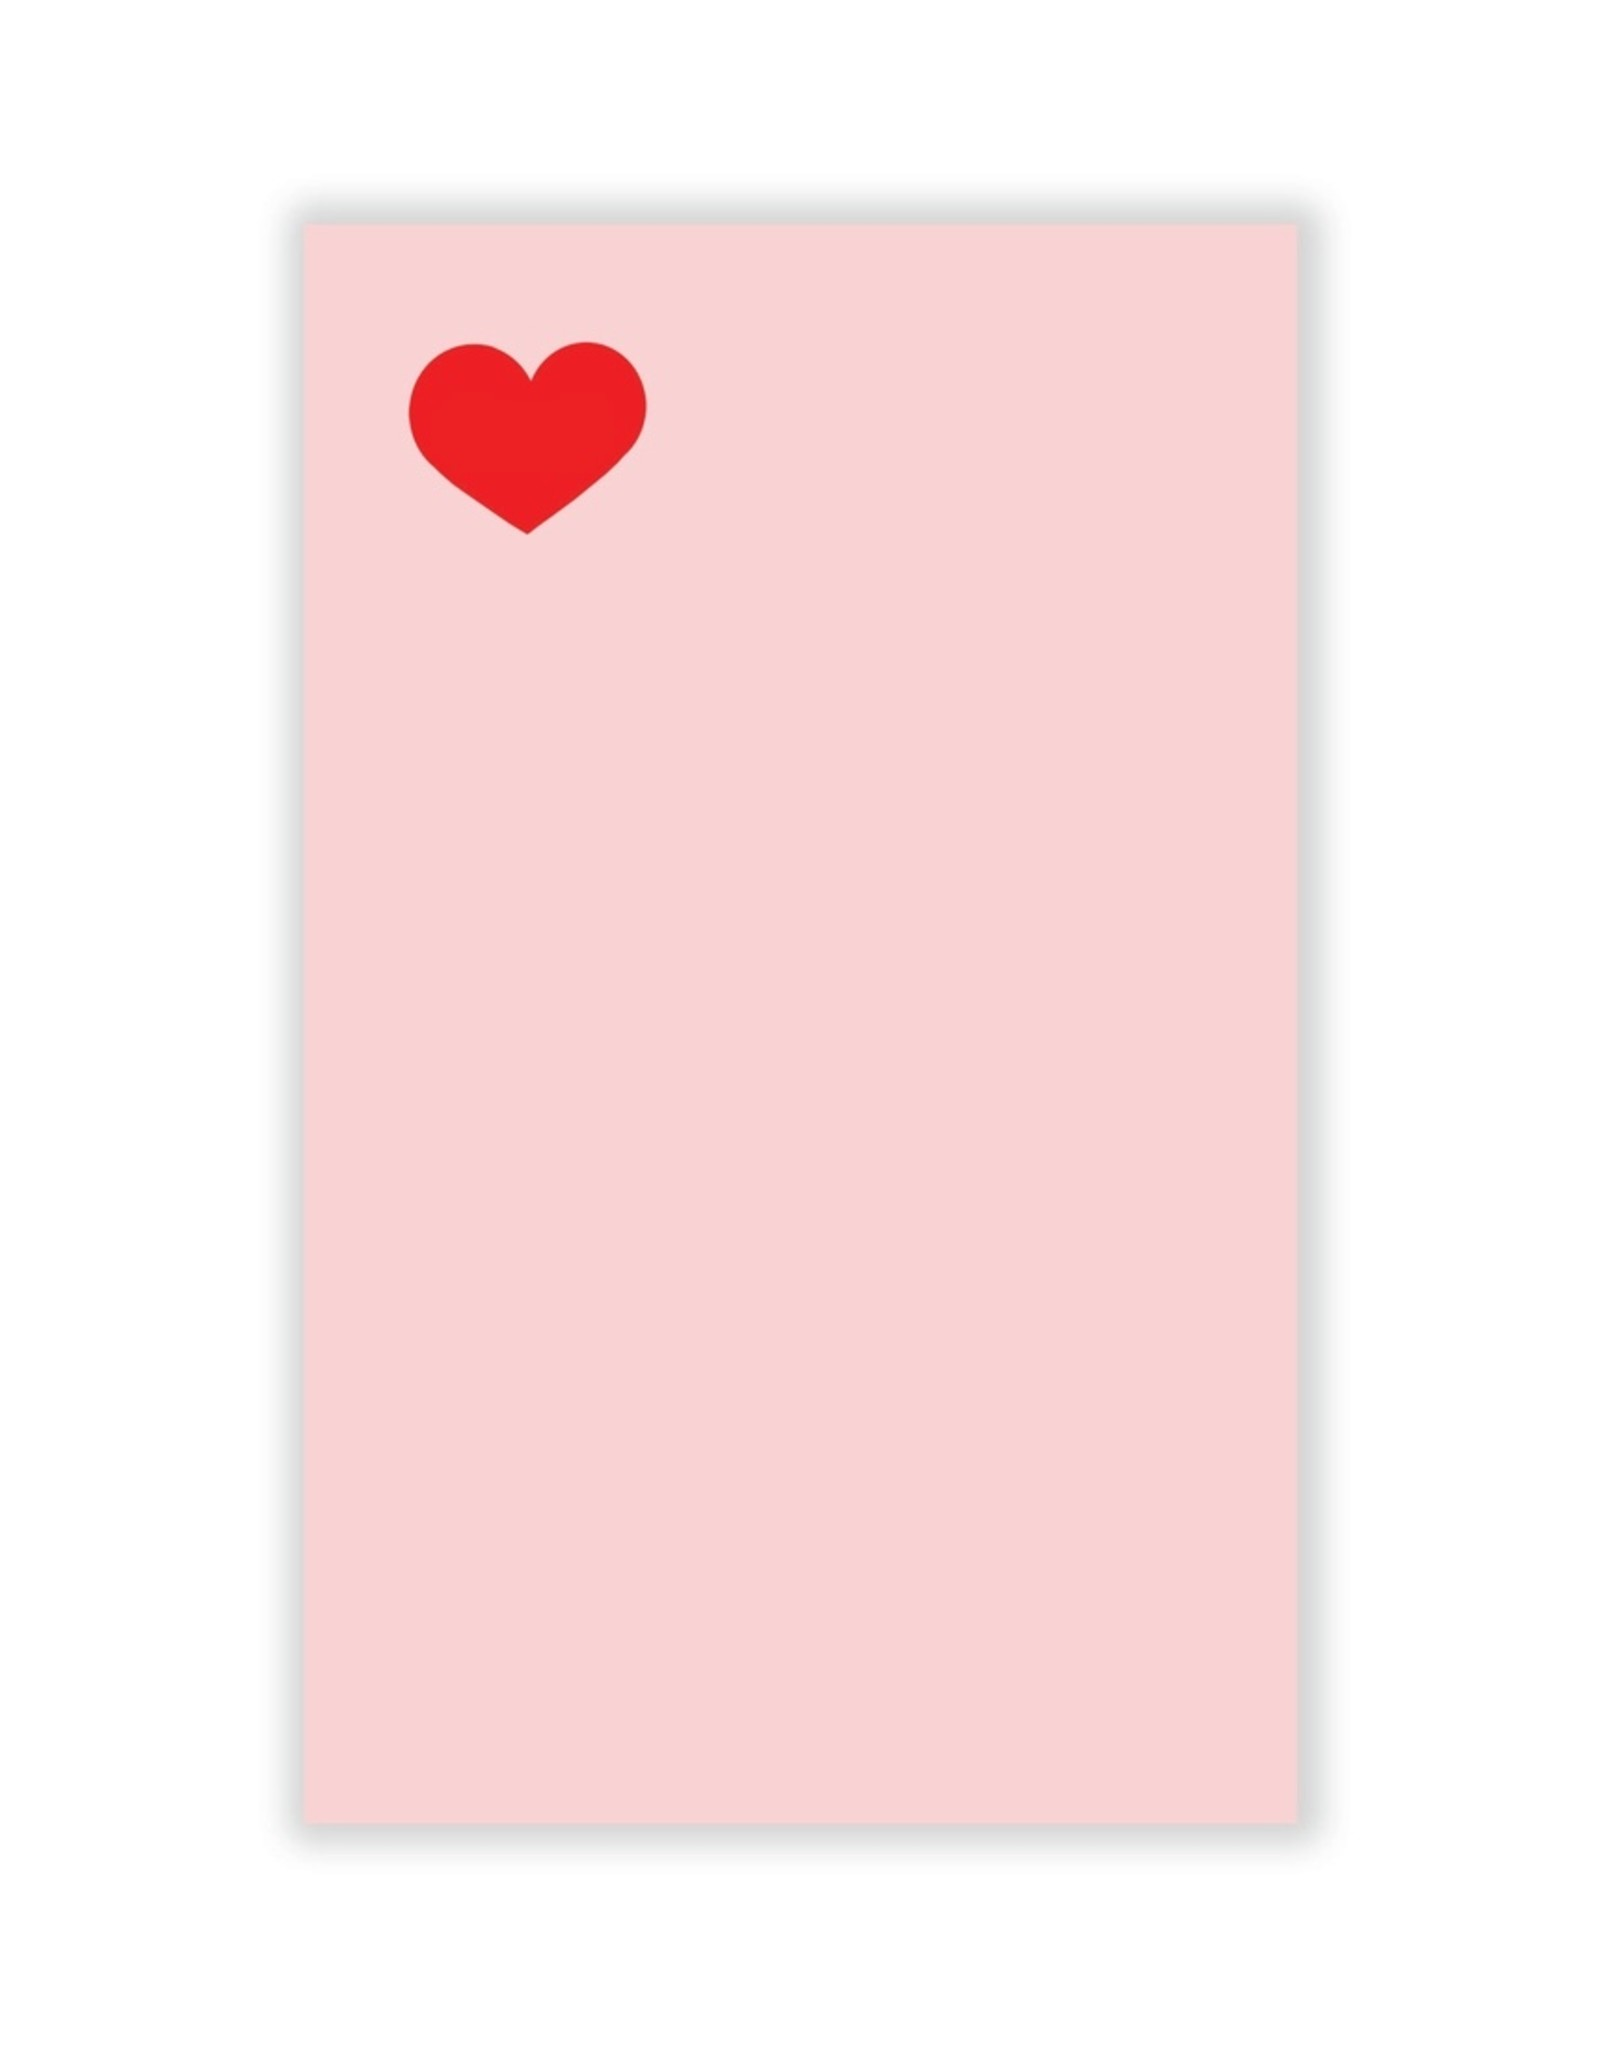 xou Notepad: Heart